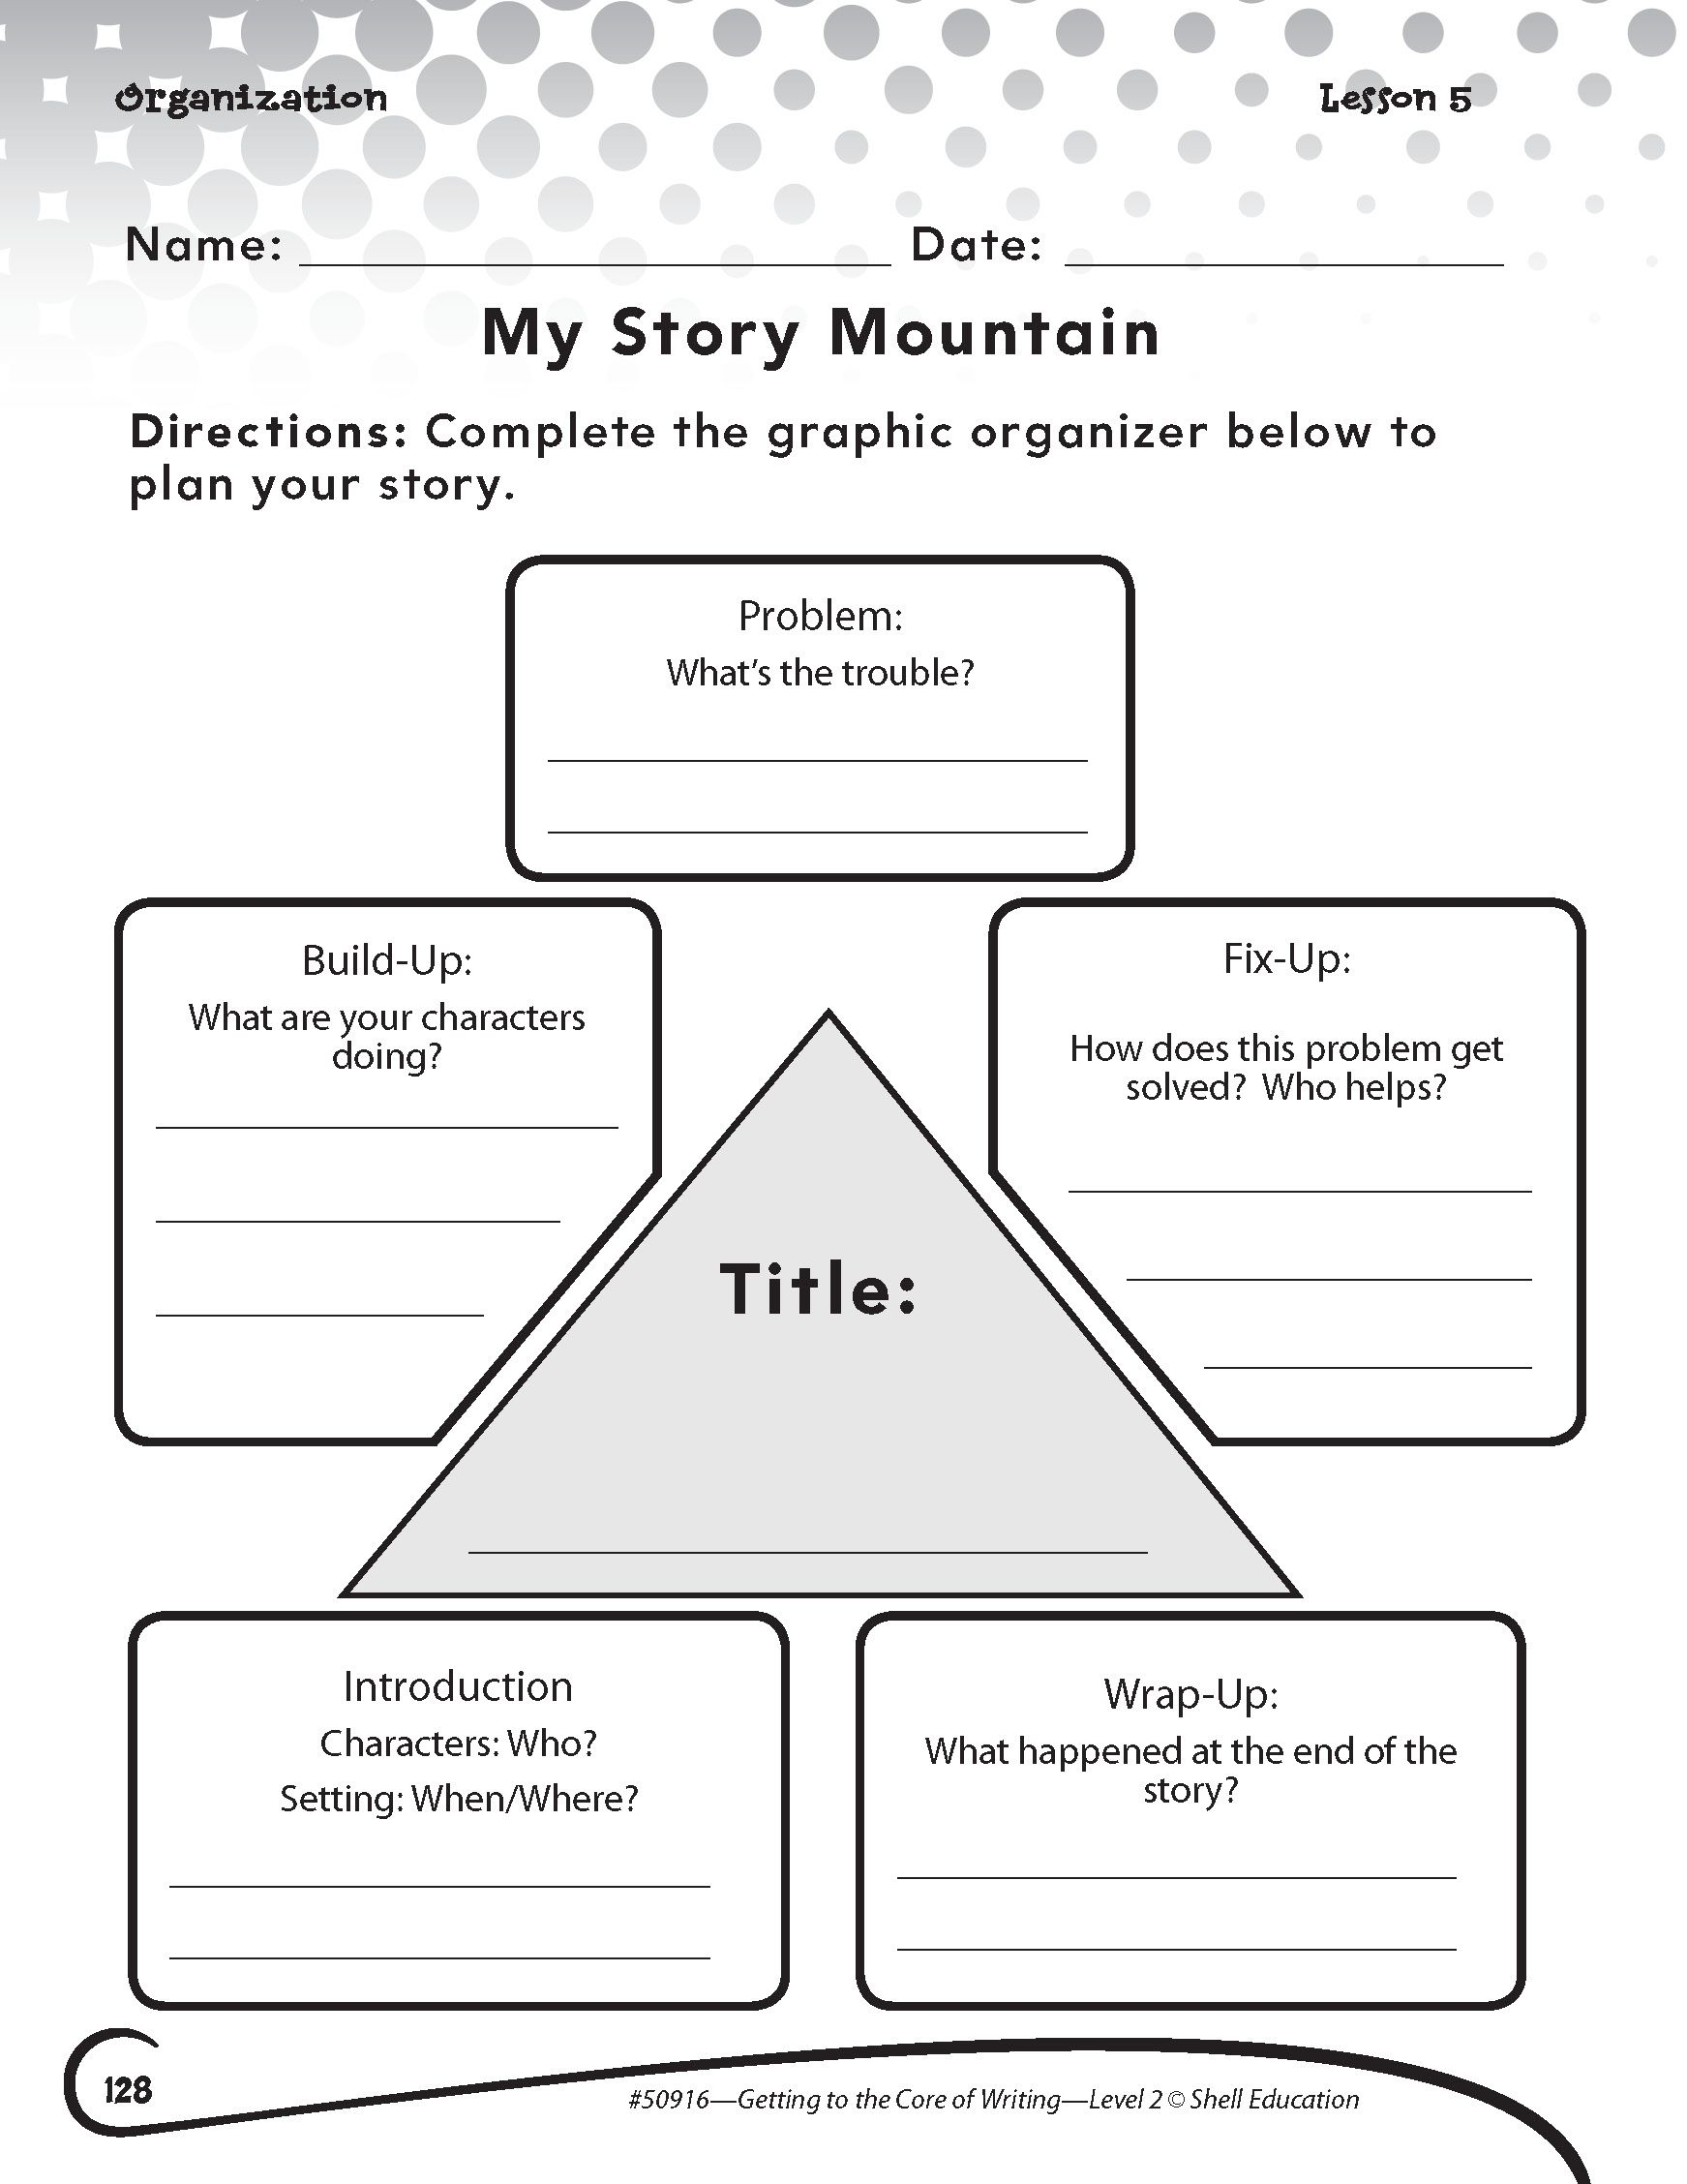 My Story Mountain Activity From Getting To The Core Of Writing Second Grade Learn More At